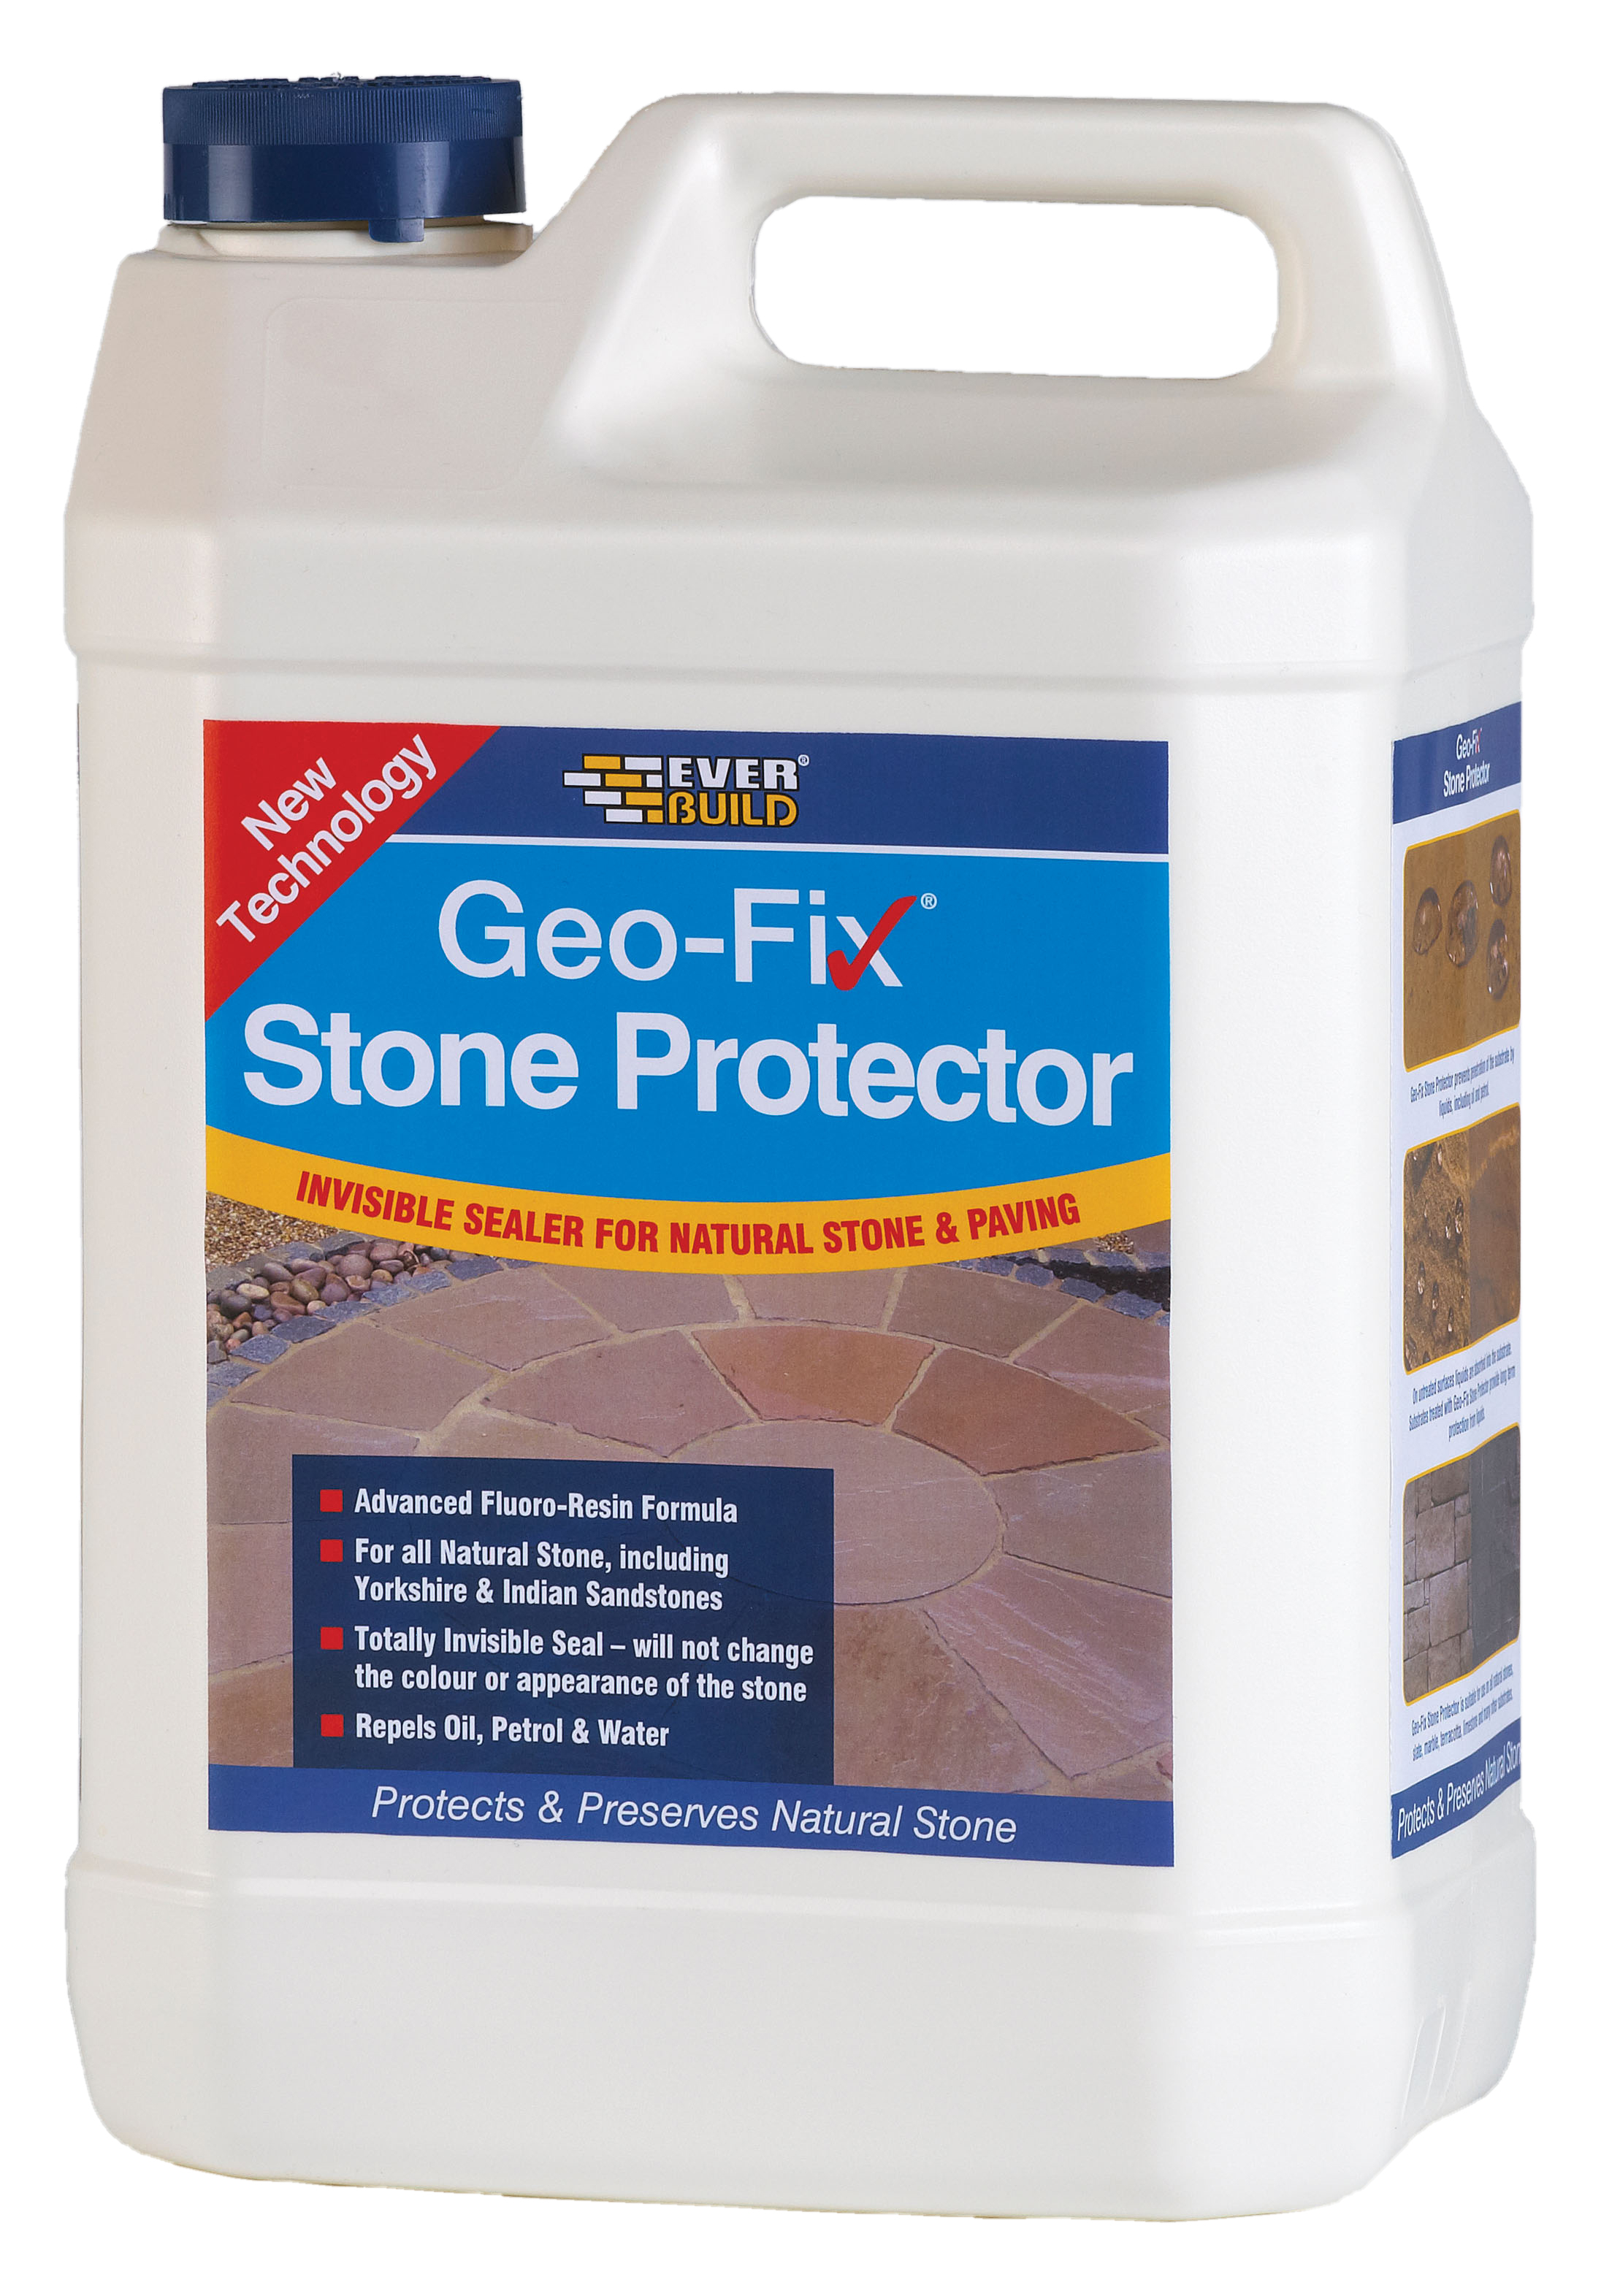 Geo-Fix Natural Stone Patio & Paving Filler